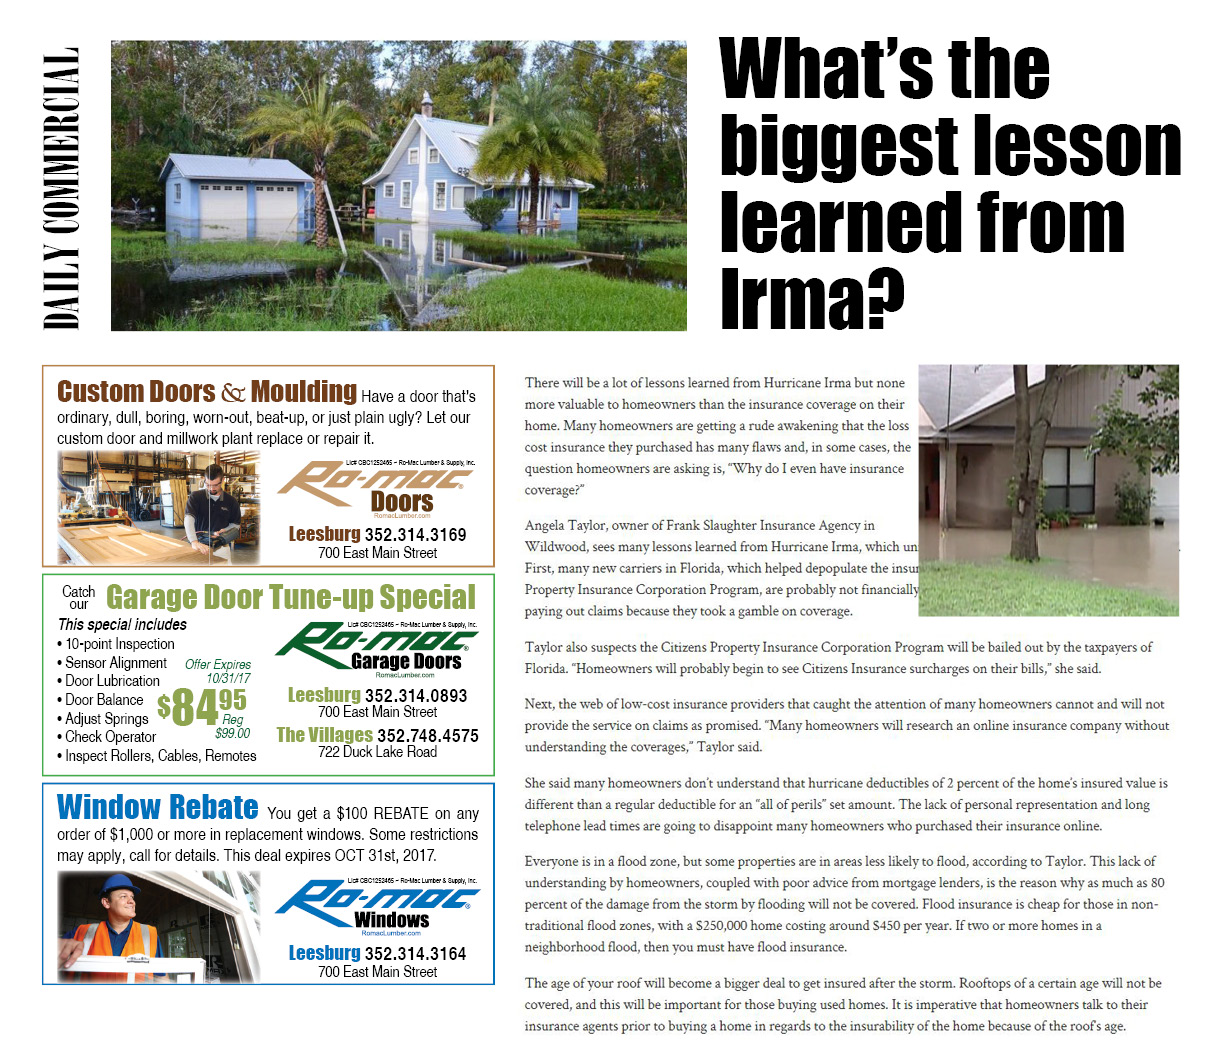 17-11-04 Irma-LessonsLearned